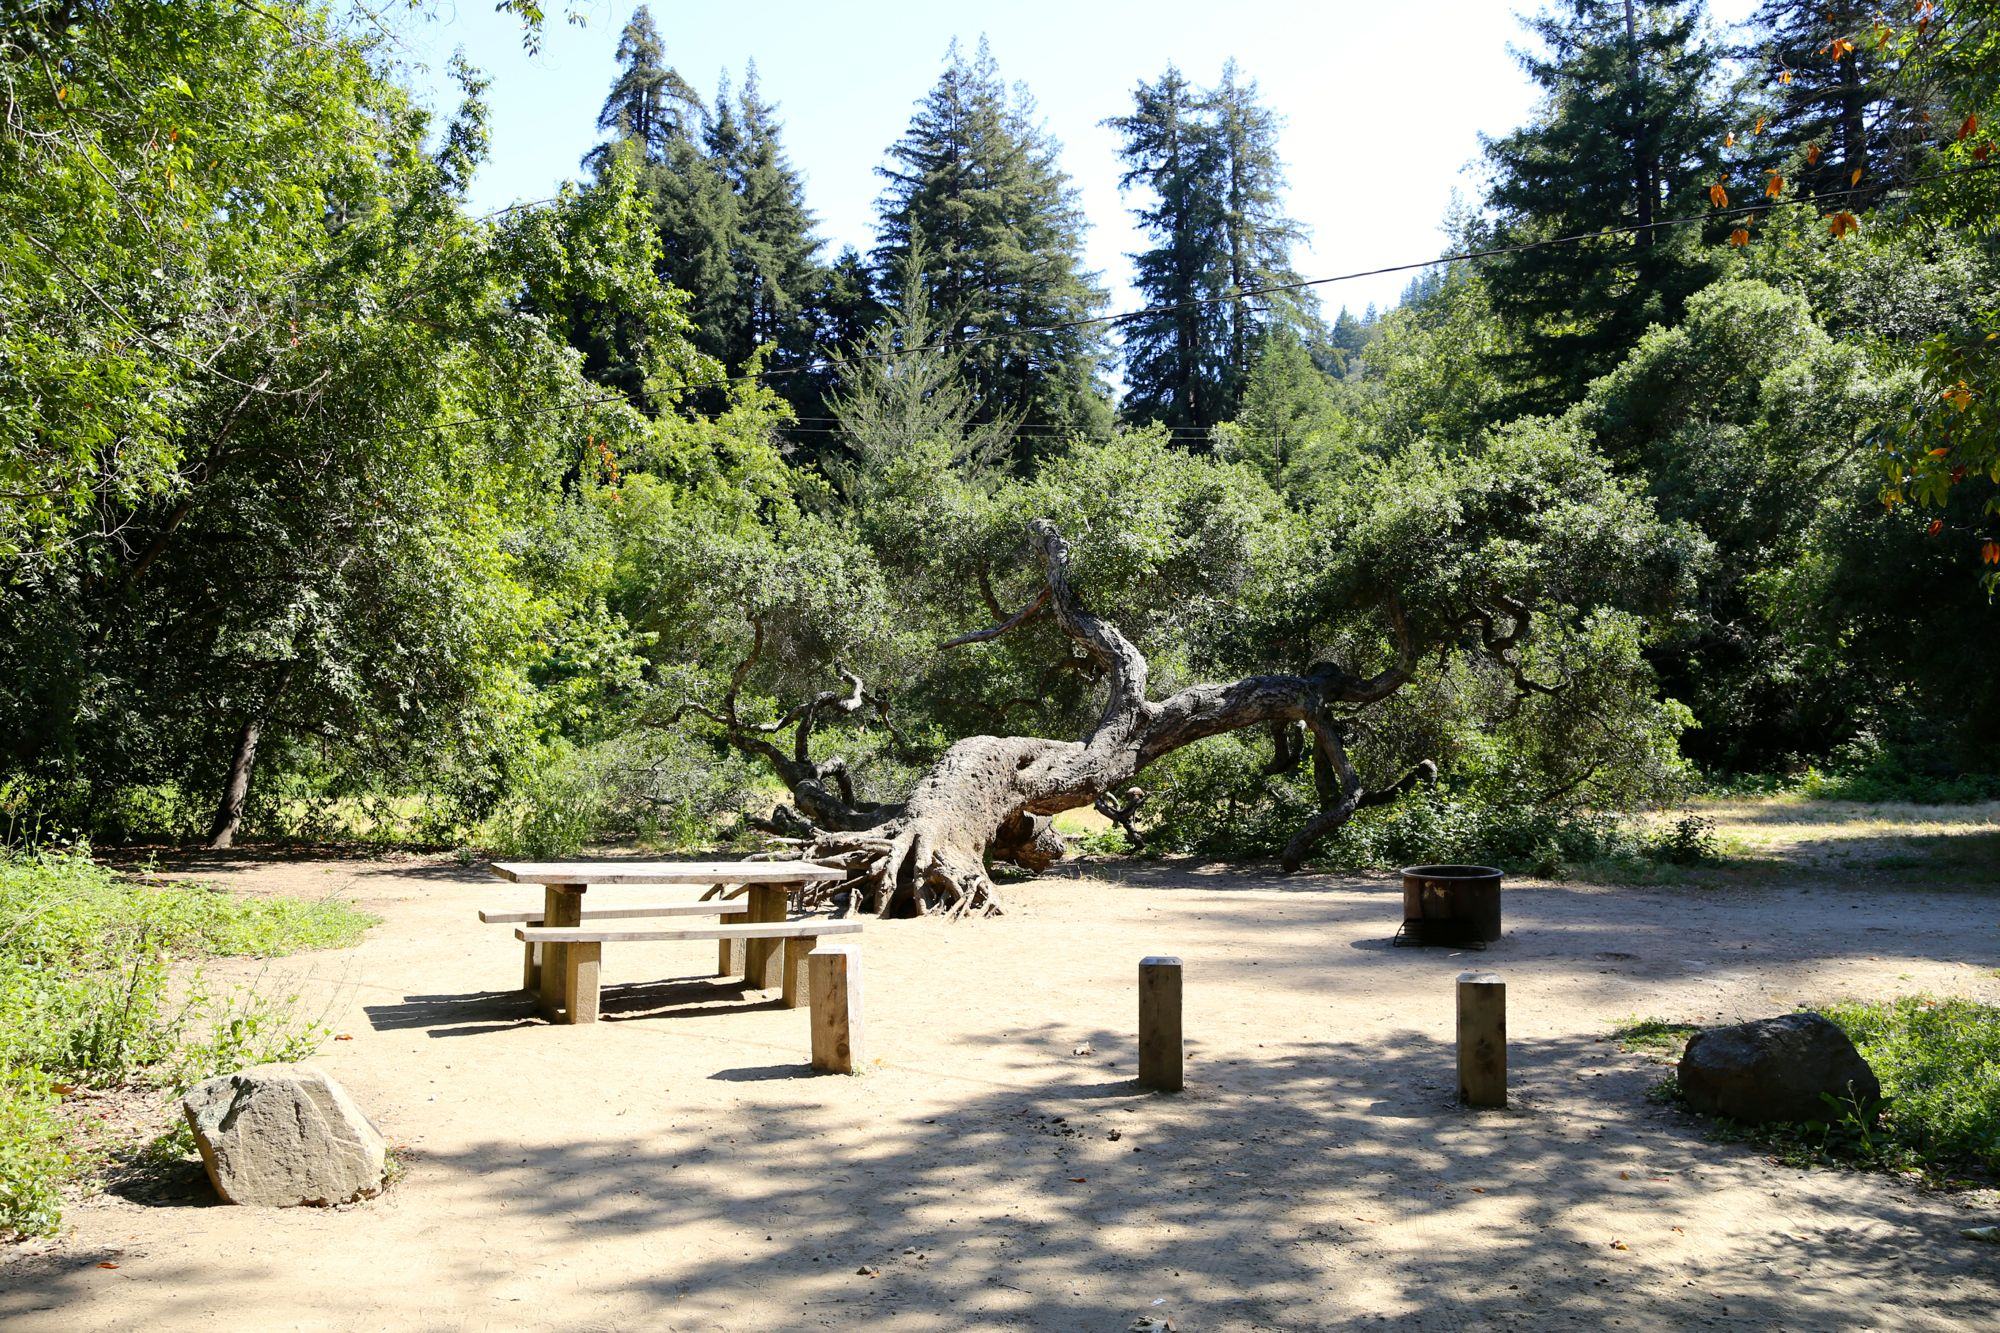 Pfeiffer big sur state park campground news from tripsicor for Big sur national park cabins